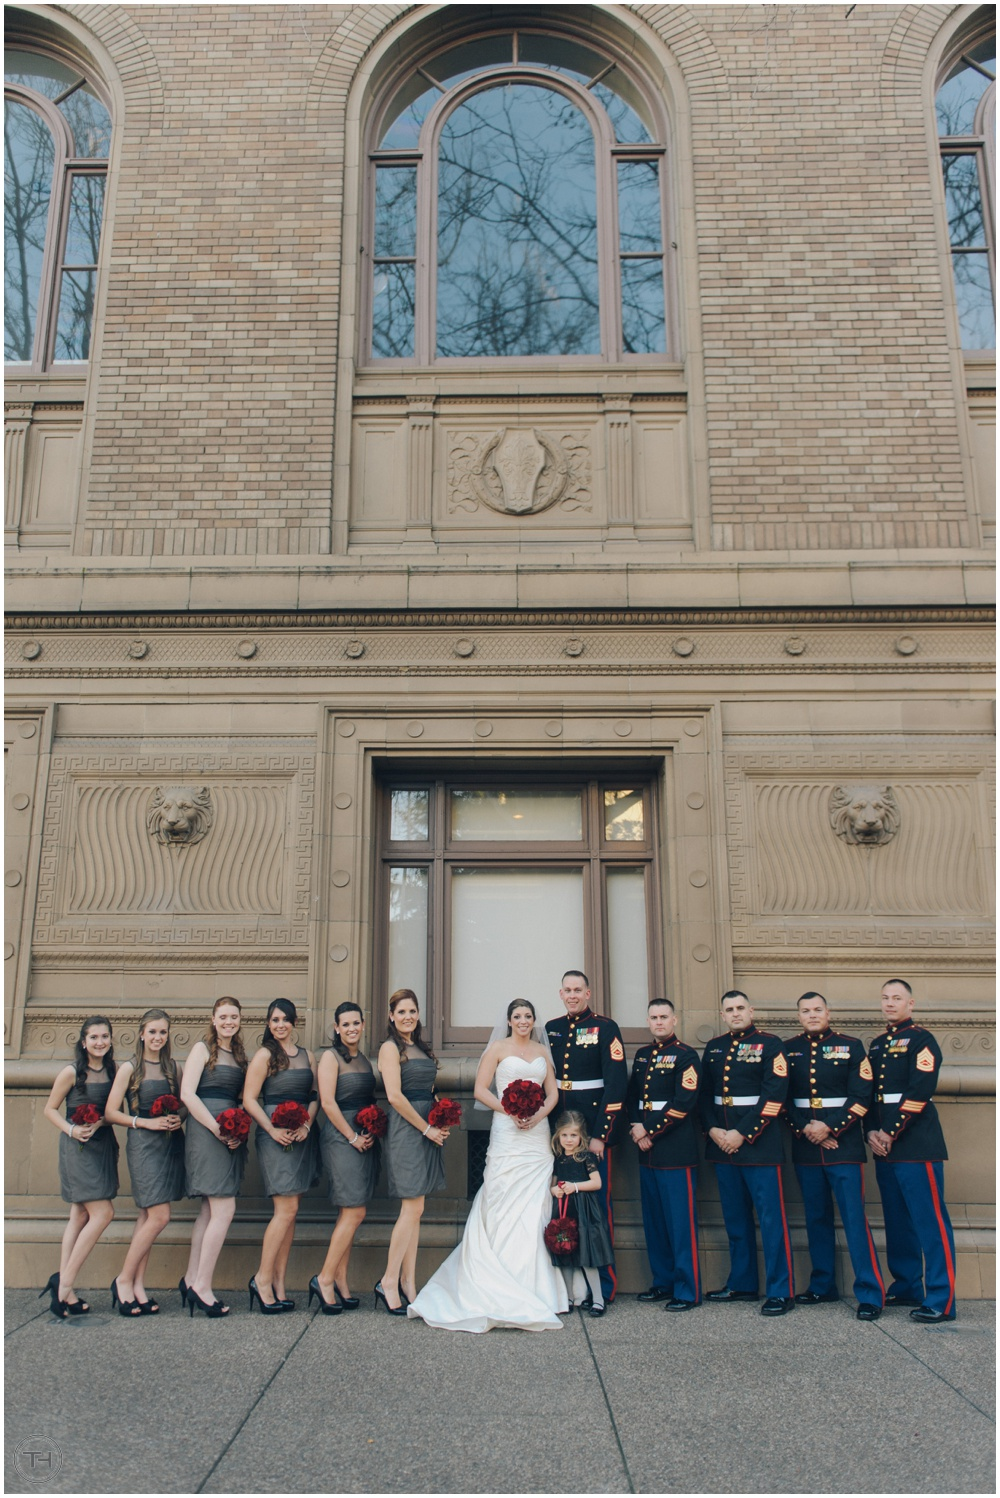 Thomas Julianna Military Wedding Photographer 34.jpg